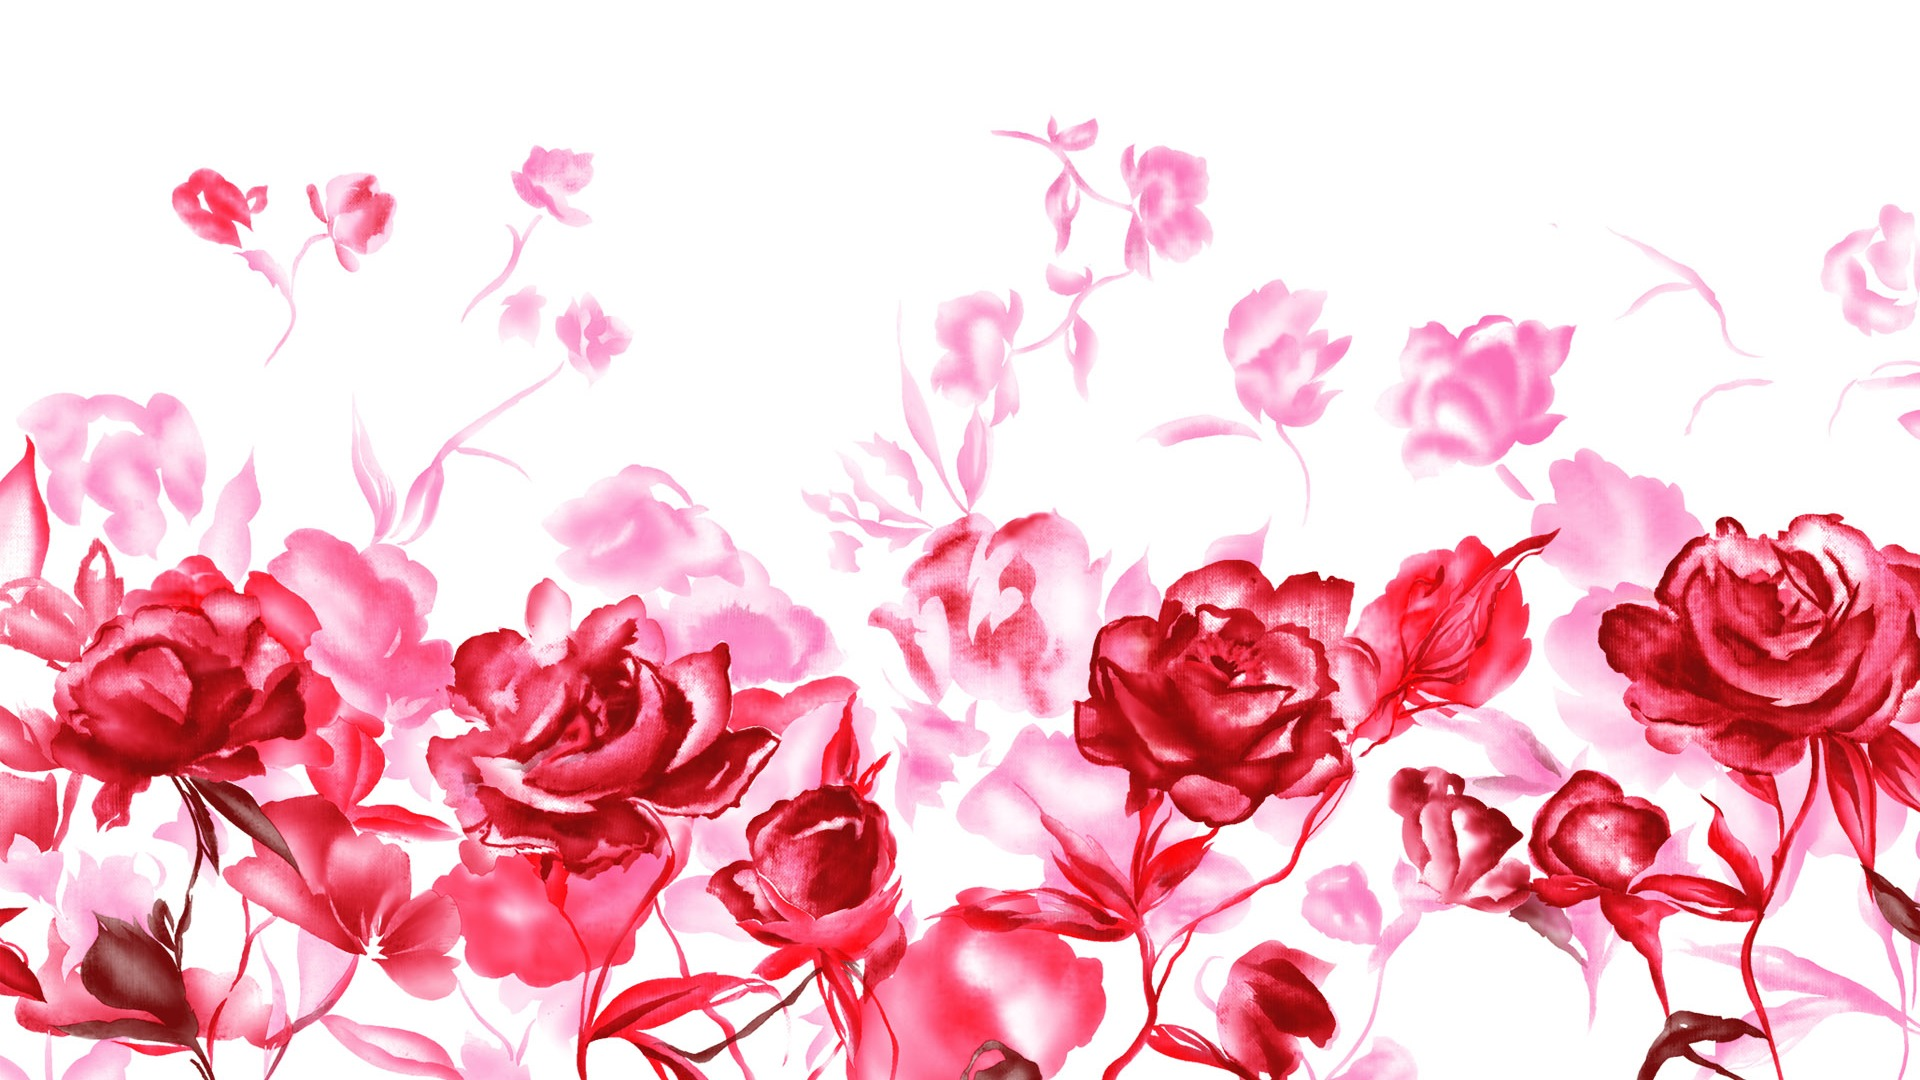 Valentine S Day Love Theme Wallpapers - Valentine's Day Ipad Wallpaper Hd , HD Wallpaper & Backgrounds